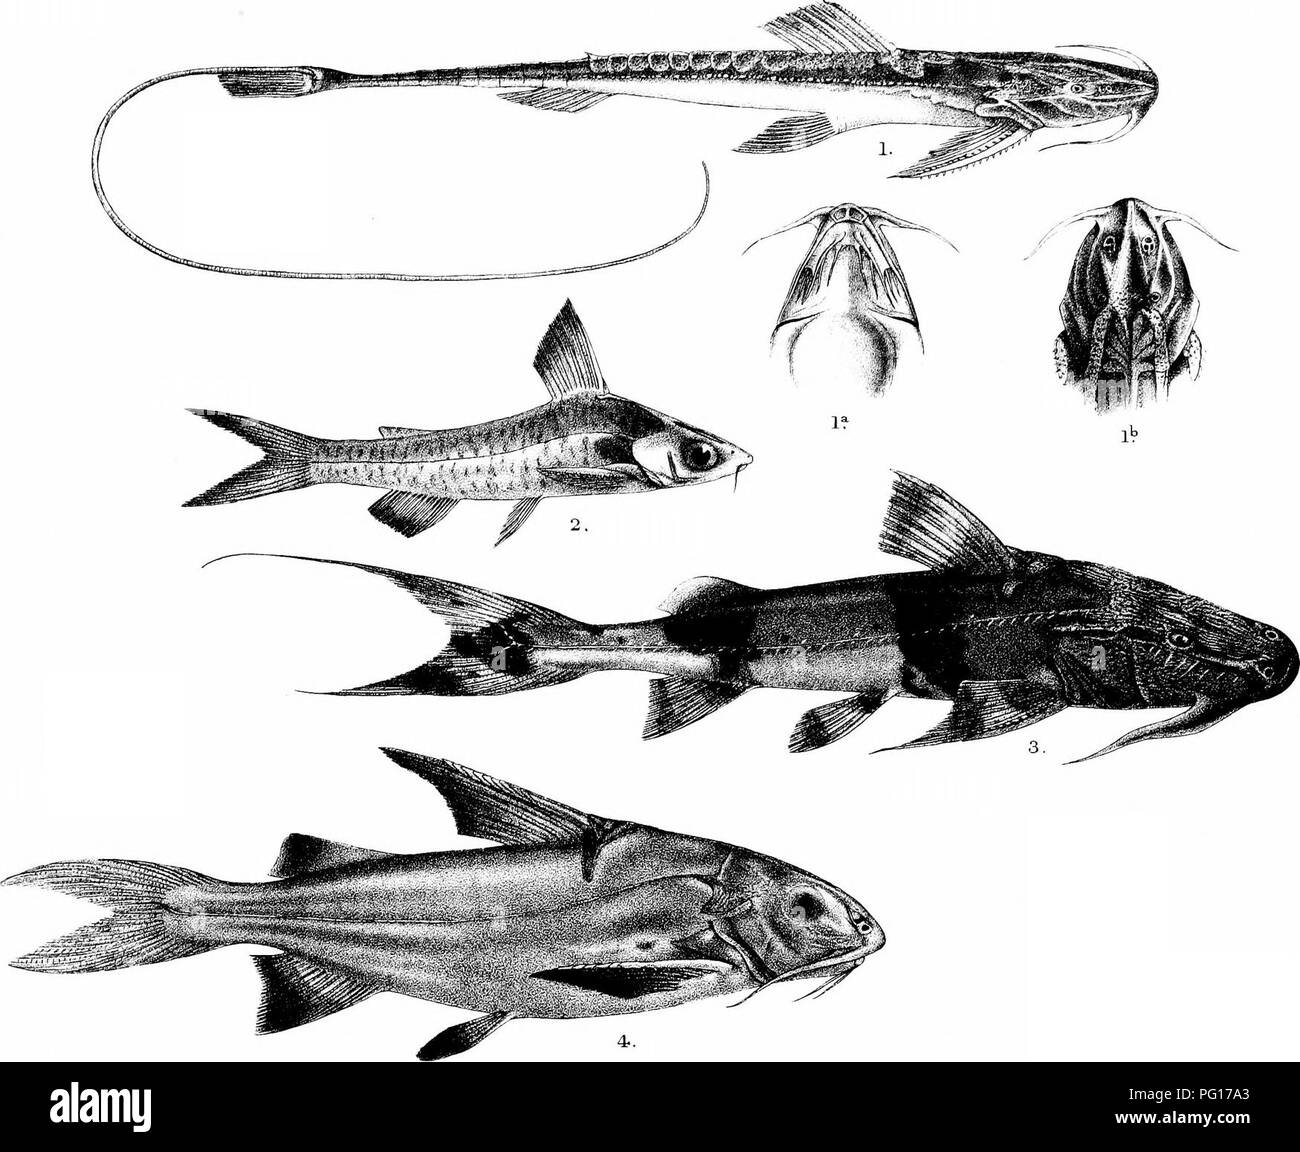 . The fishes of India; being a natural history of the fishes known to inhabit the seas and fresh waters of India, Burma, and Ceylon. Fishes. Day's Fishes of India. Plate Cr/.. Please note that these images are extracted from scanned page images that may have been digitally enhanced for readability - coloration and appearance of these illustrations may not perfectly resemble the original work.. Day, Francis, 1829-1889. London, B. Quaritch - Stock Image